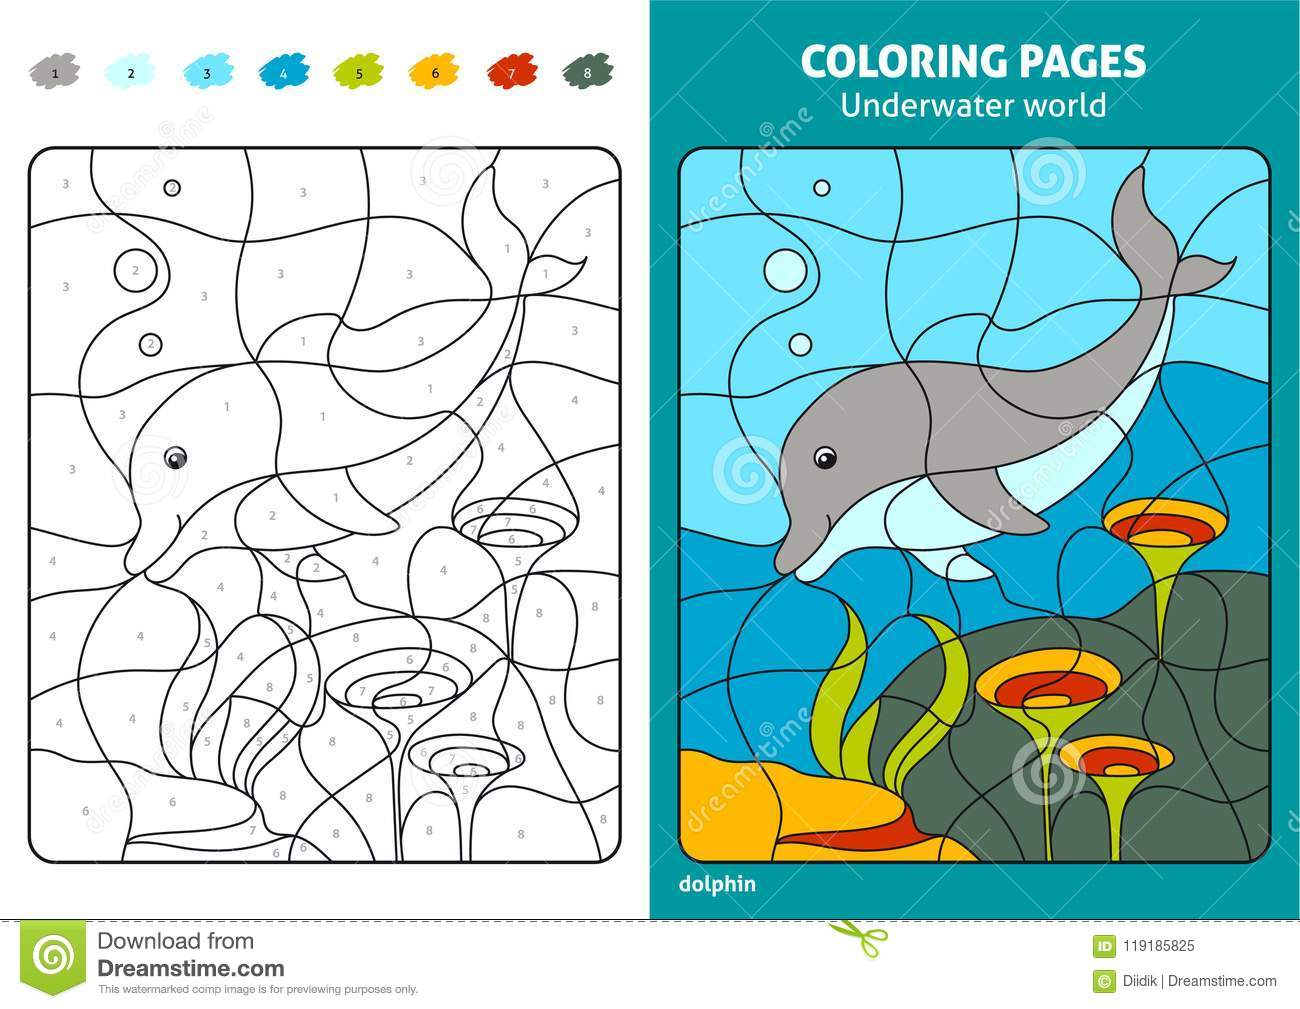 Underwater World Coloring Page For Kids, Dolphin. Stock ...